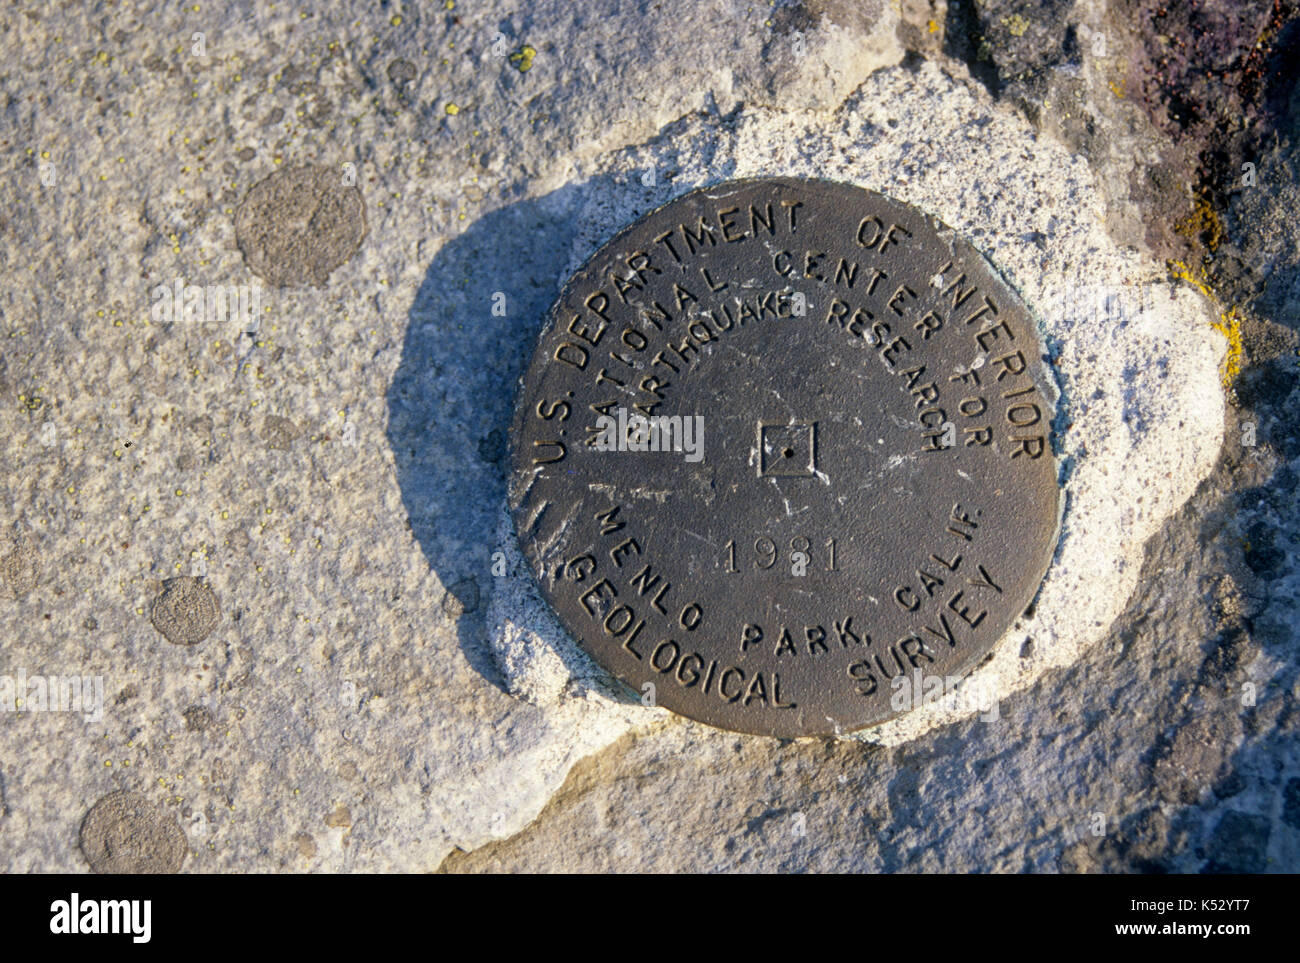 Chinidere Mountain survey marker, Mark O Hatfield Wilderness, Mt Hood National Forest, Oregon - Stock Image